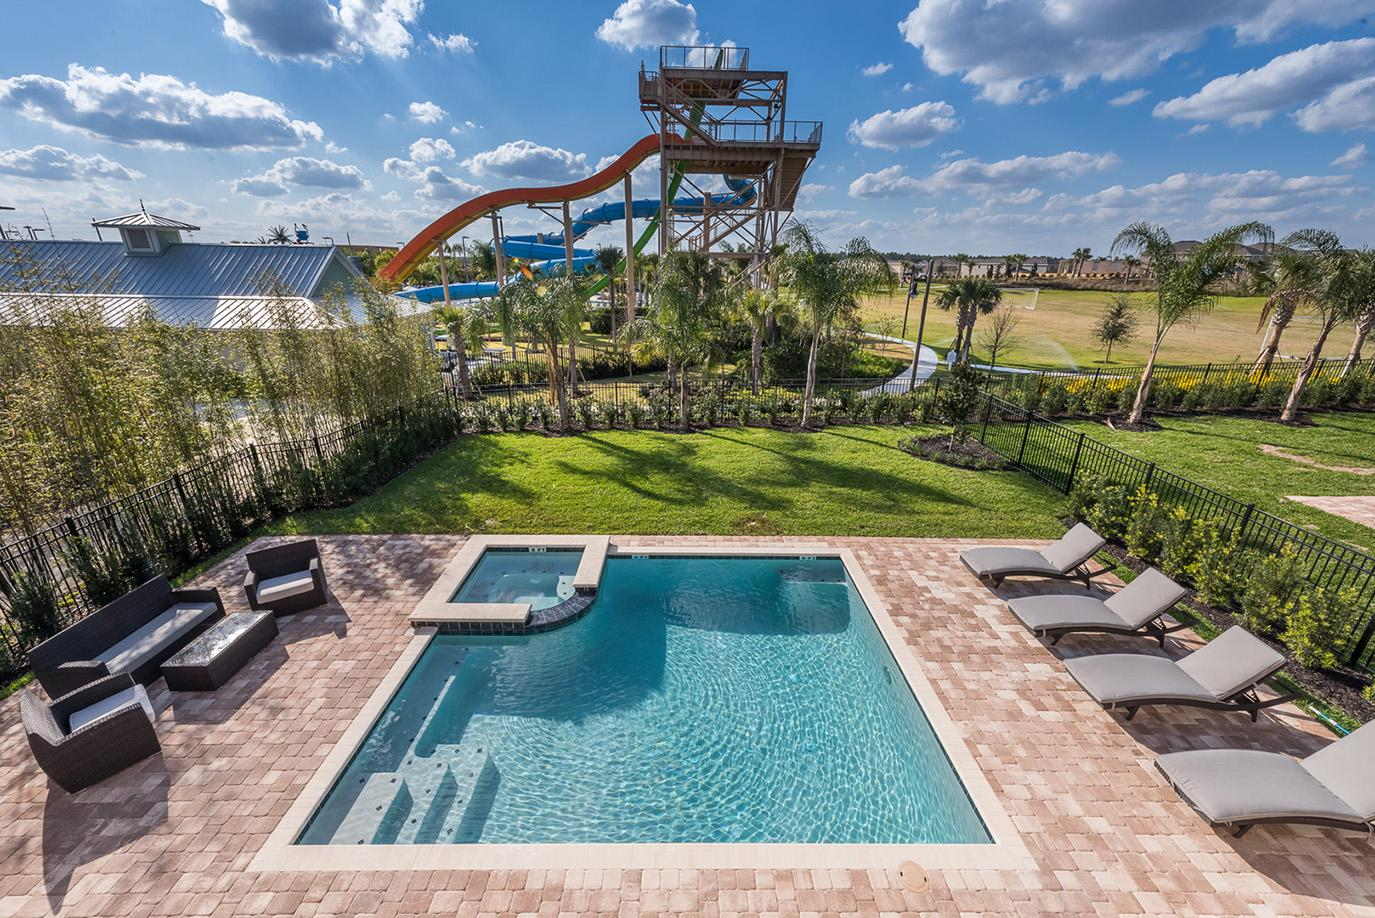 Property Image 1 - Inviting Home near Disney with Water Park View